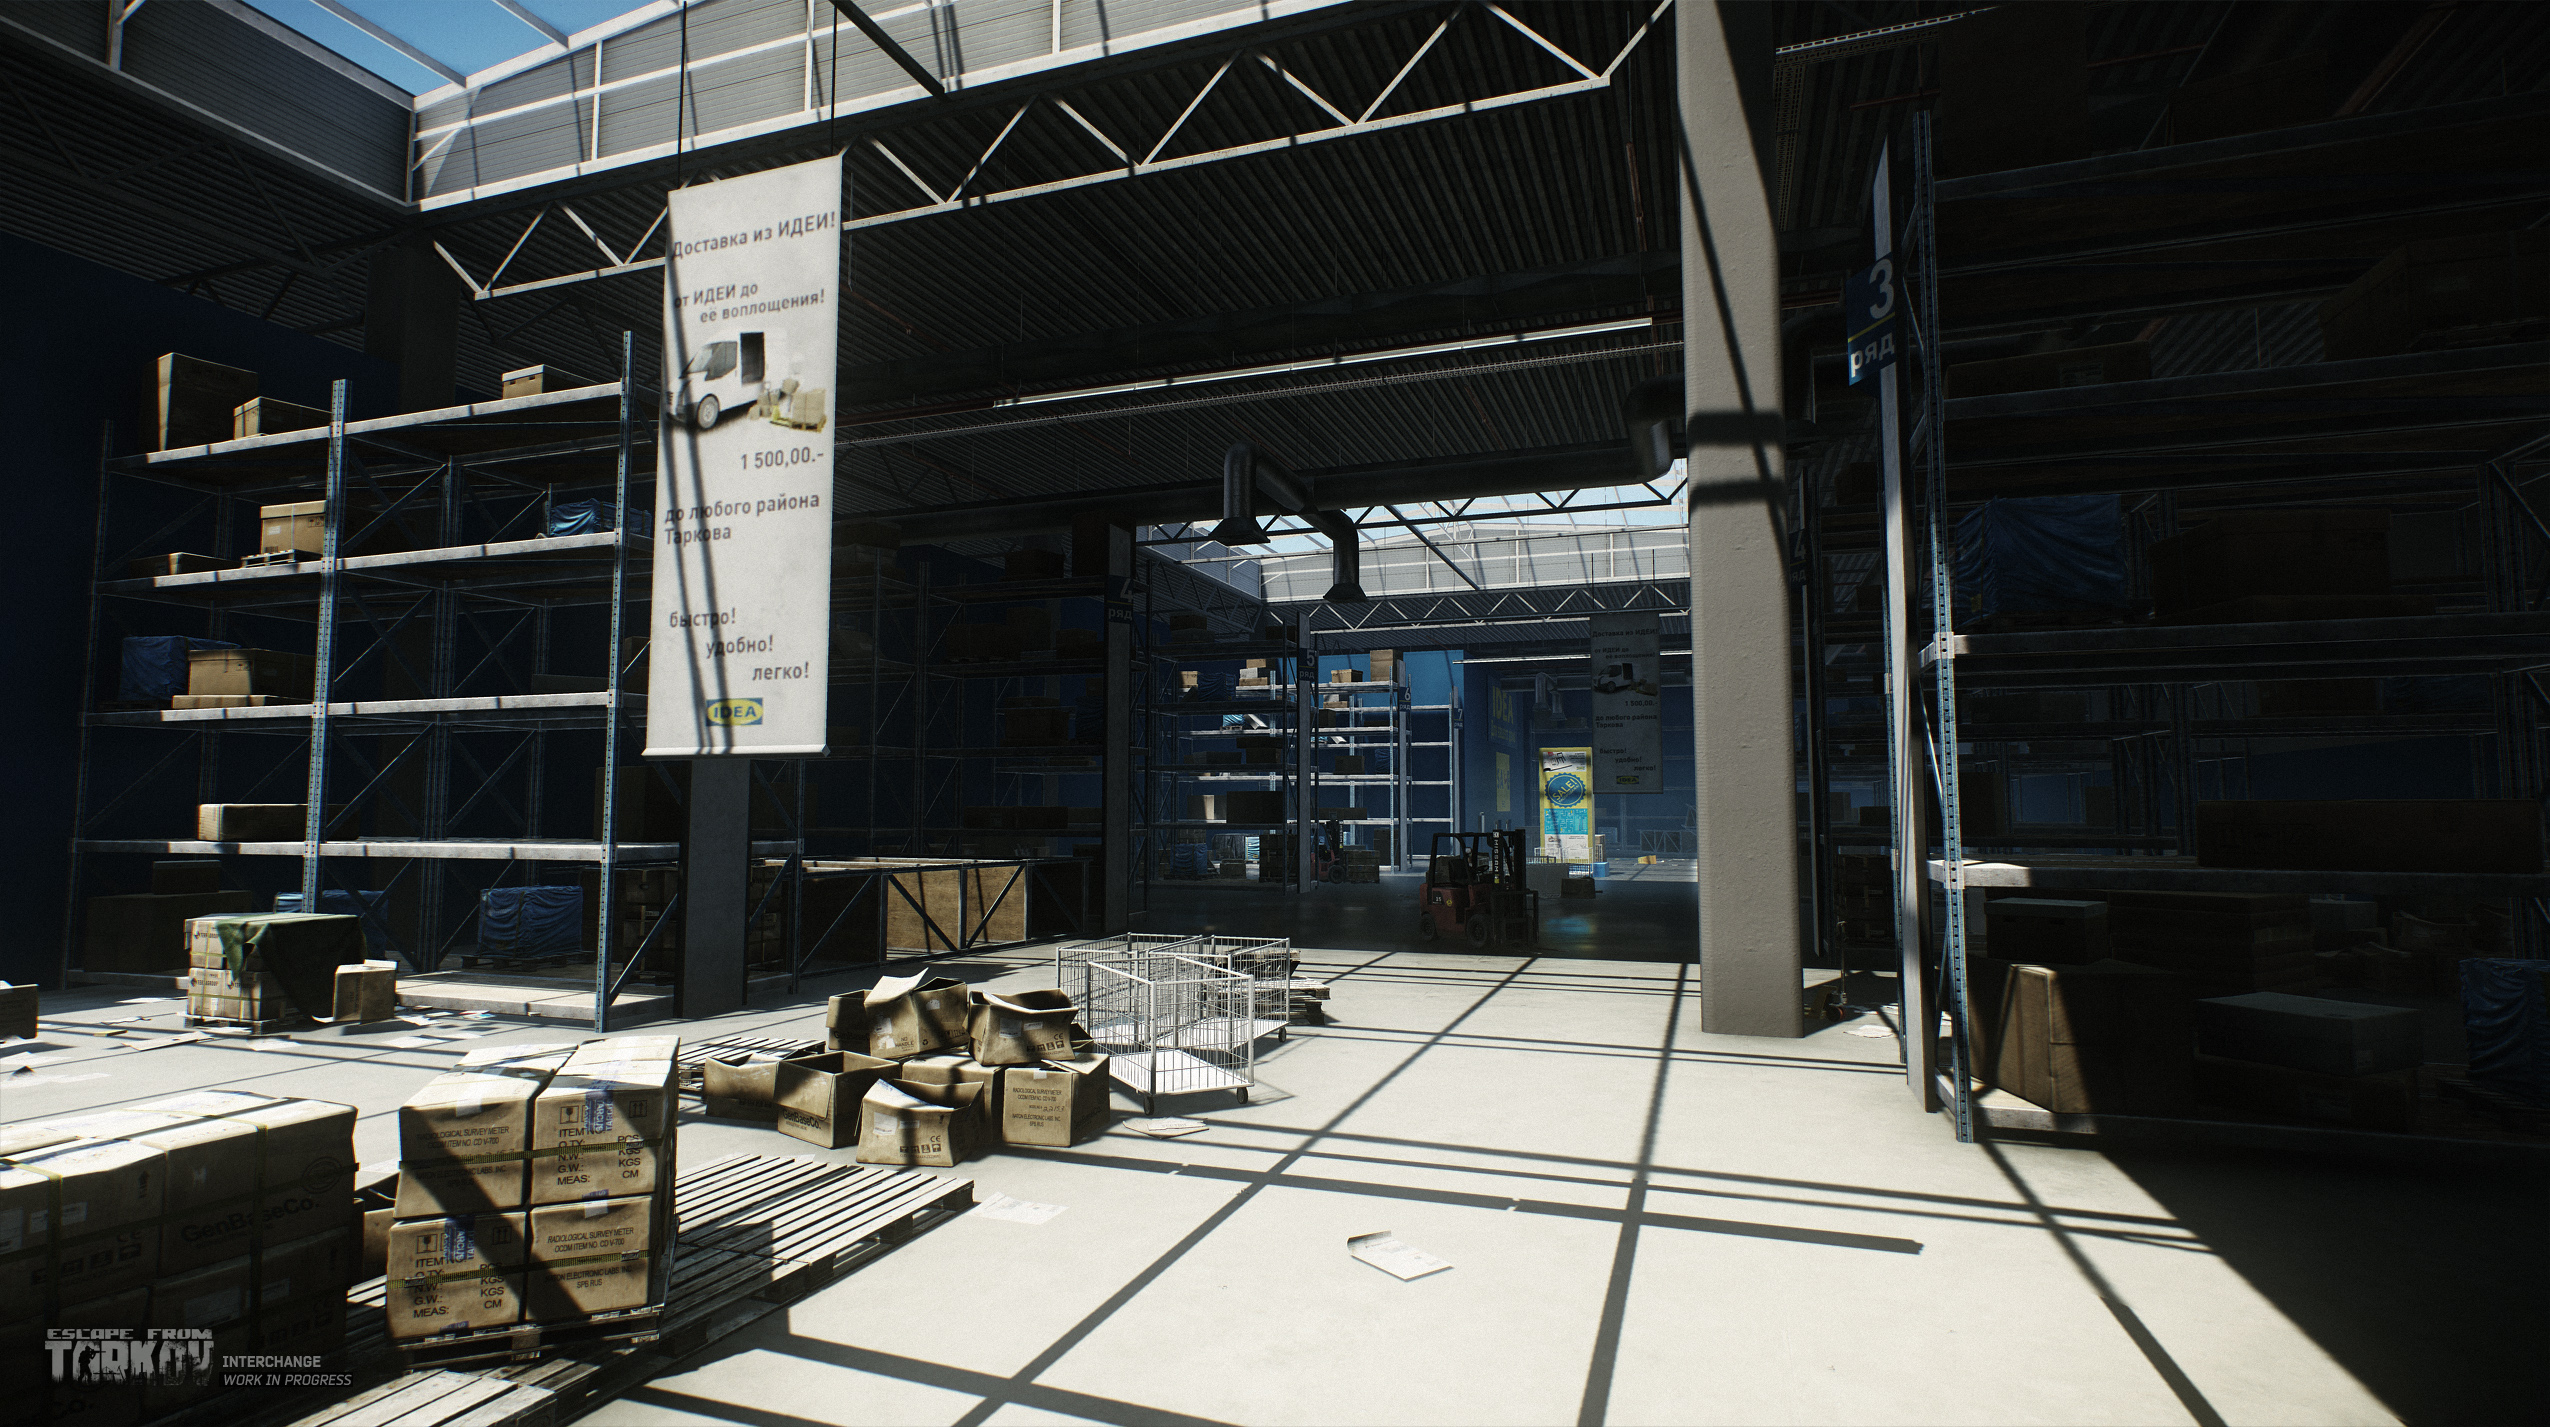 Escape from Tarkov Update 0 8 Adds New Map, Optimizes Games Physics